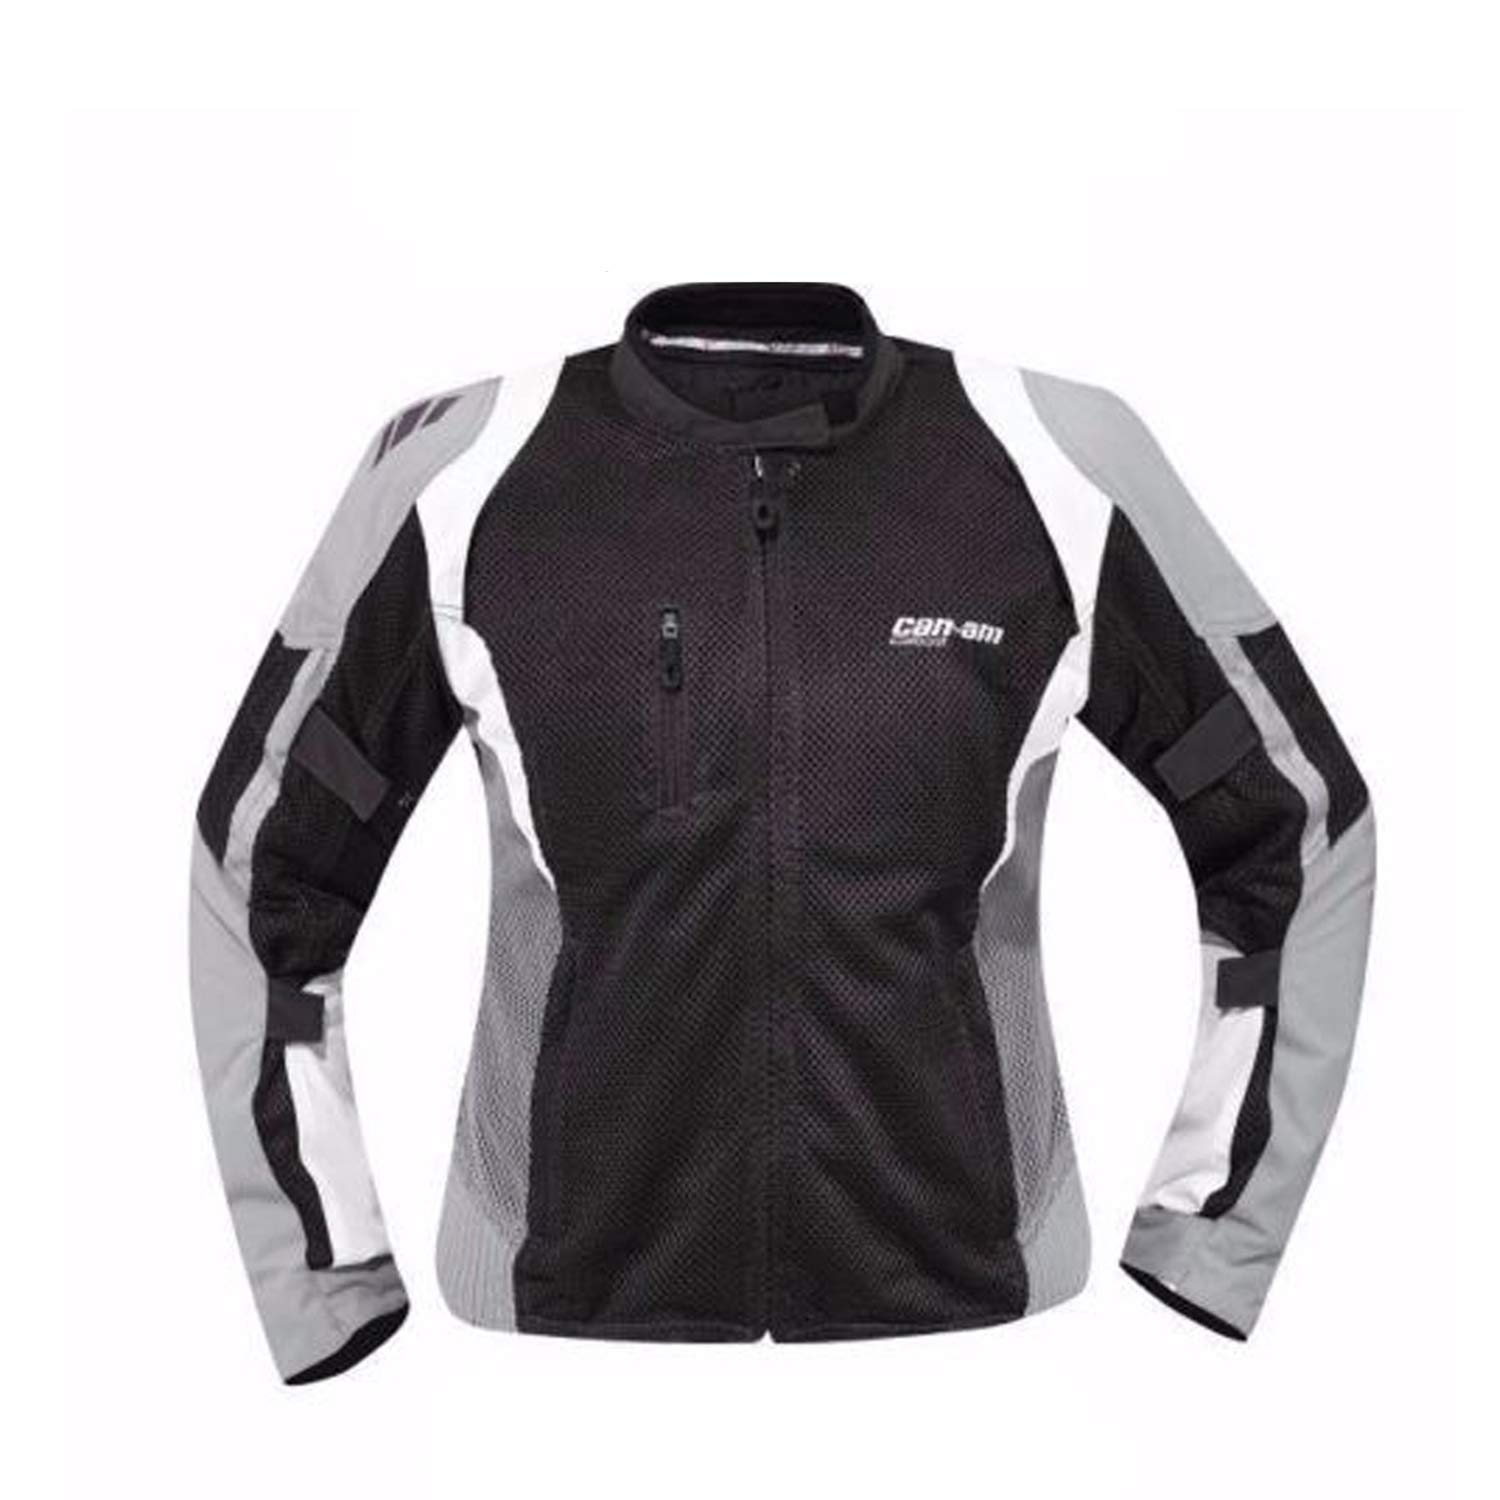 Can-Am Spyder Women's Summer Mesh Riding Jacket - Medium 4333054773